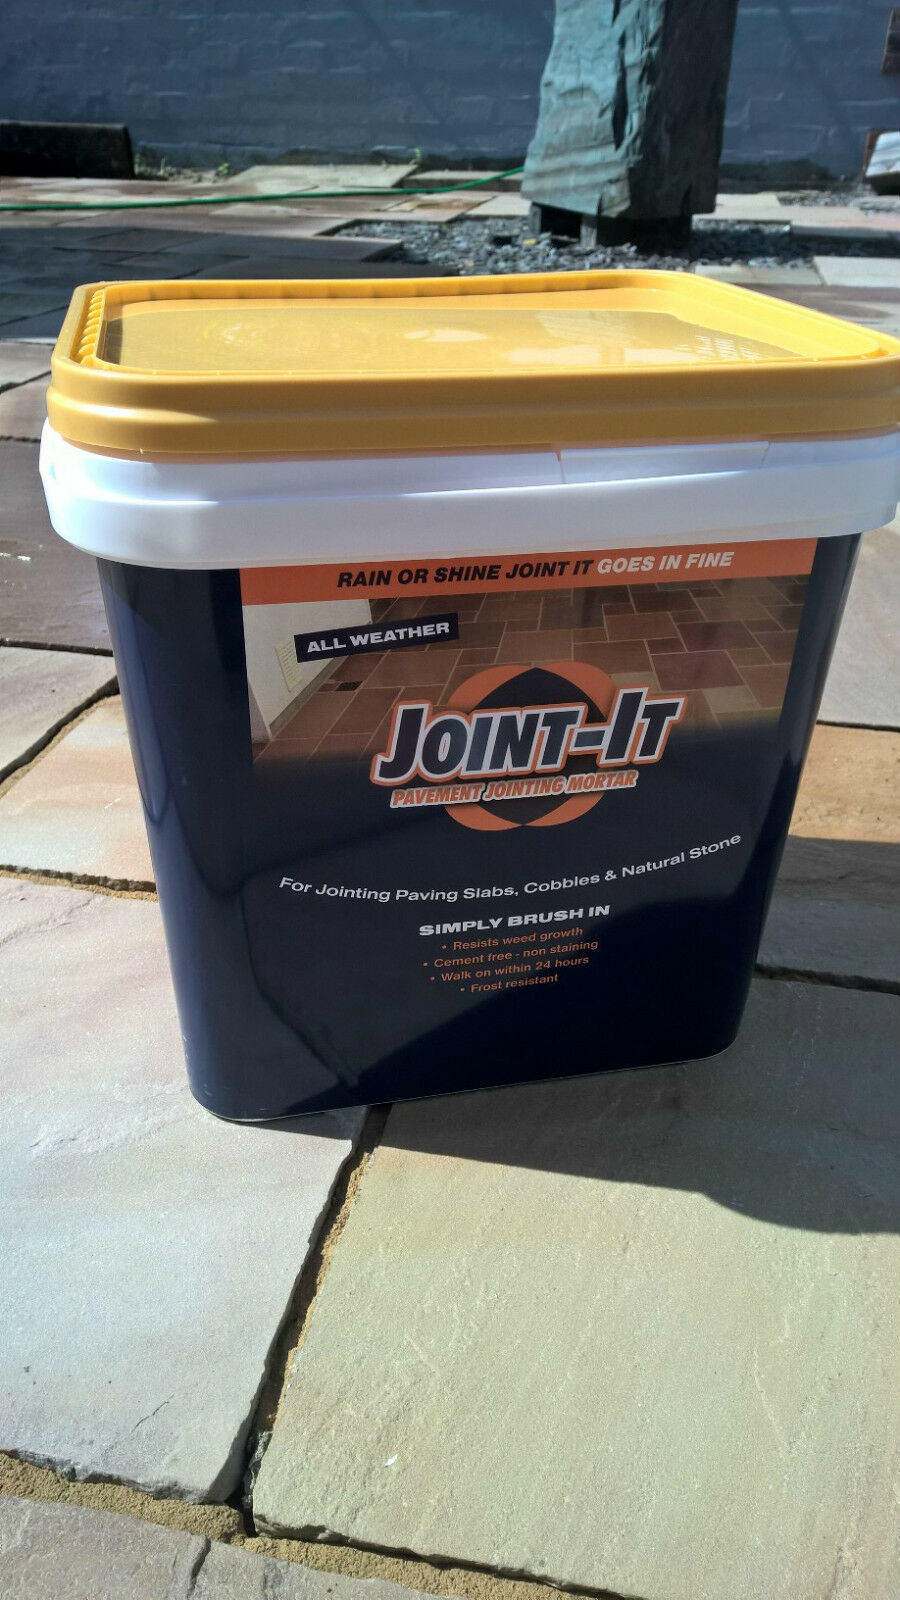 JOINT IT PAVING GROUT Paving Jointing Grout Mortar Compound 20Kg 3 Colours We are delivering fast and free.